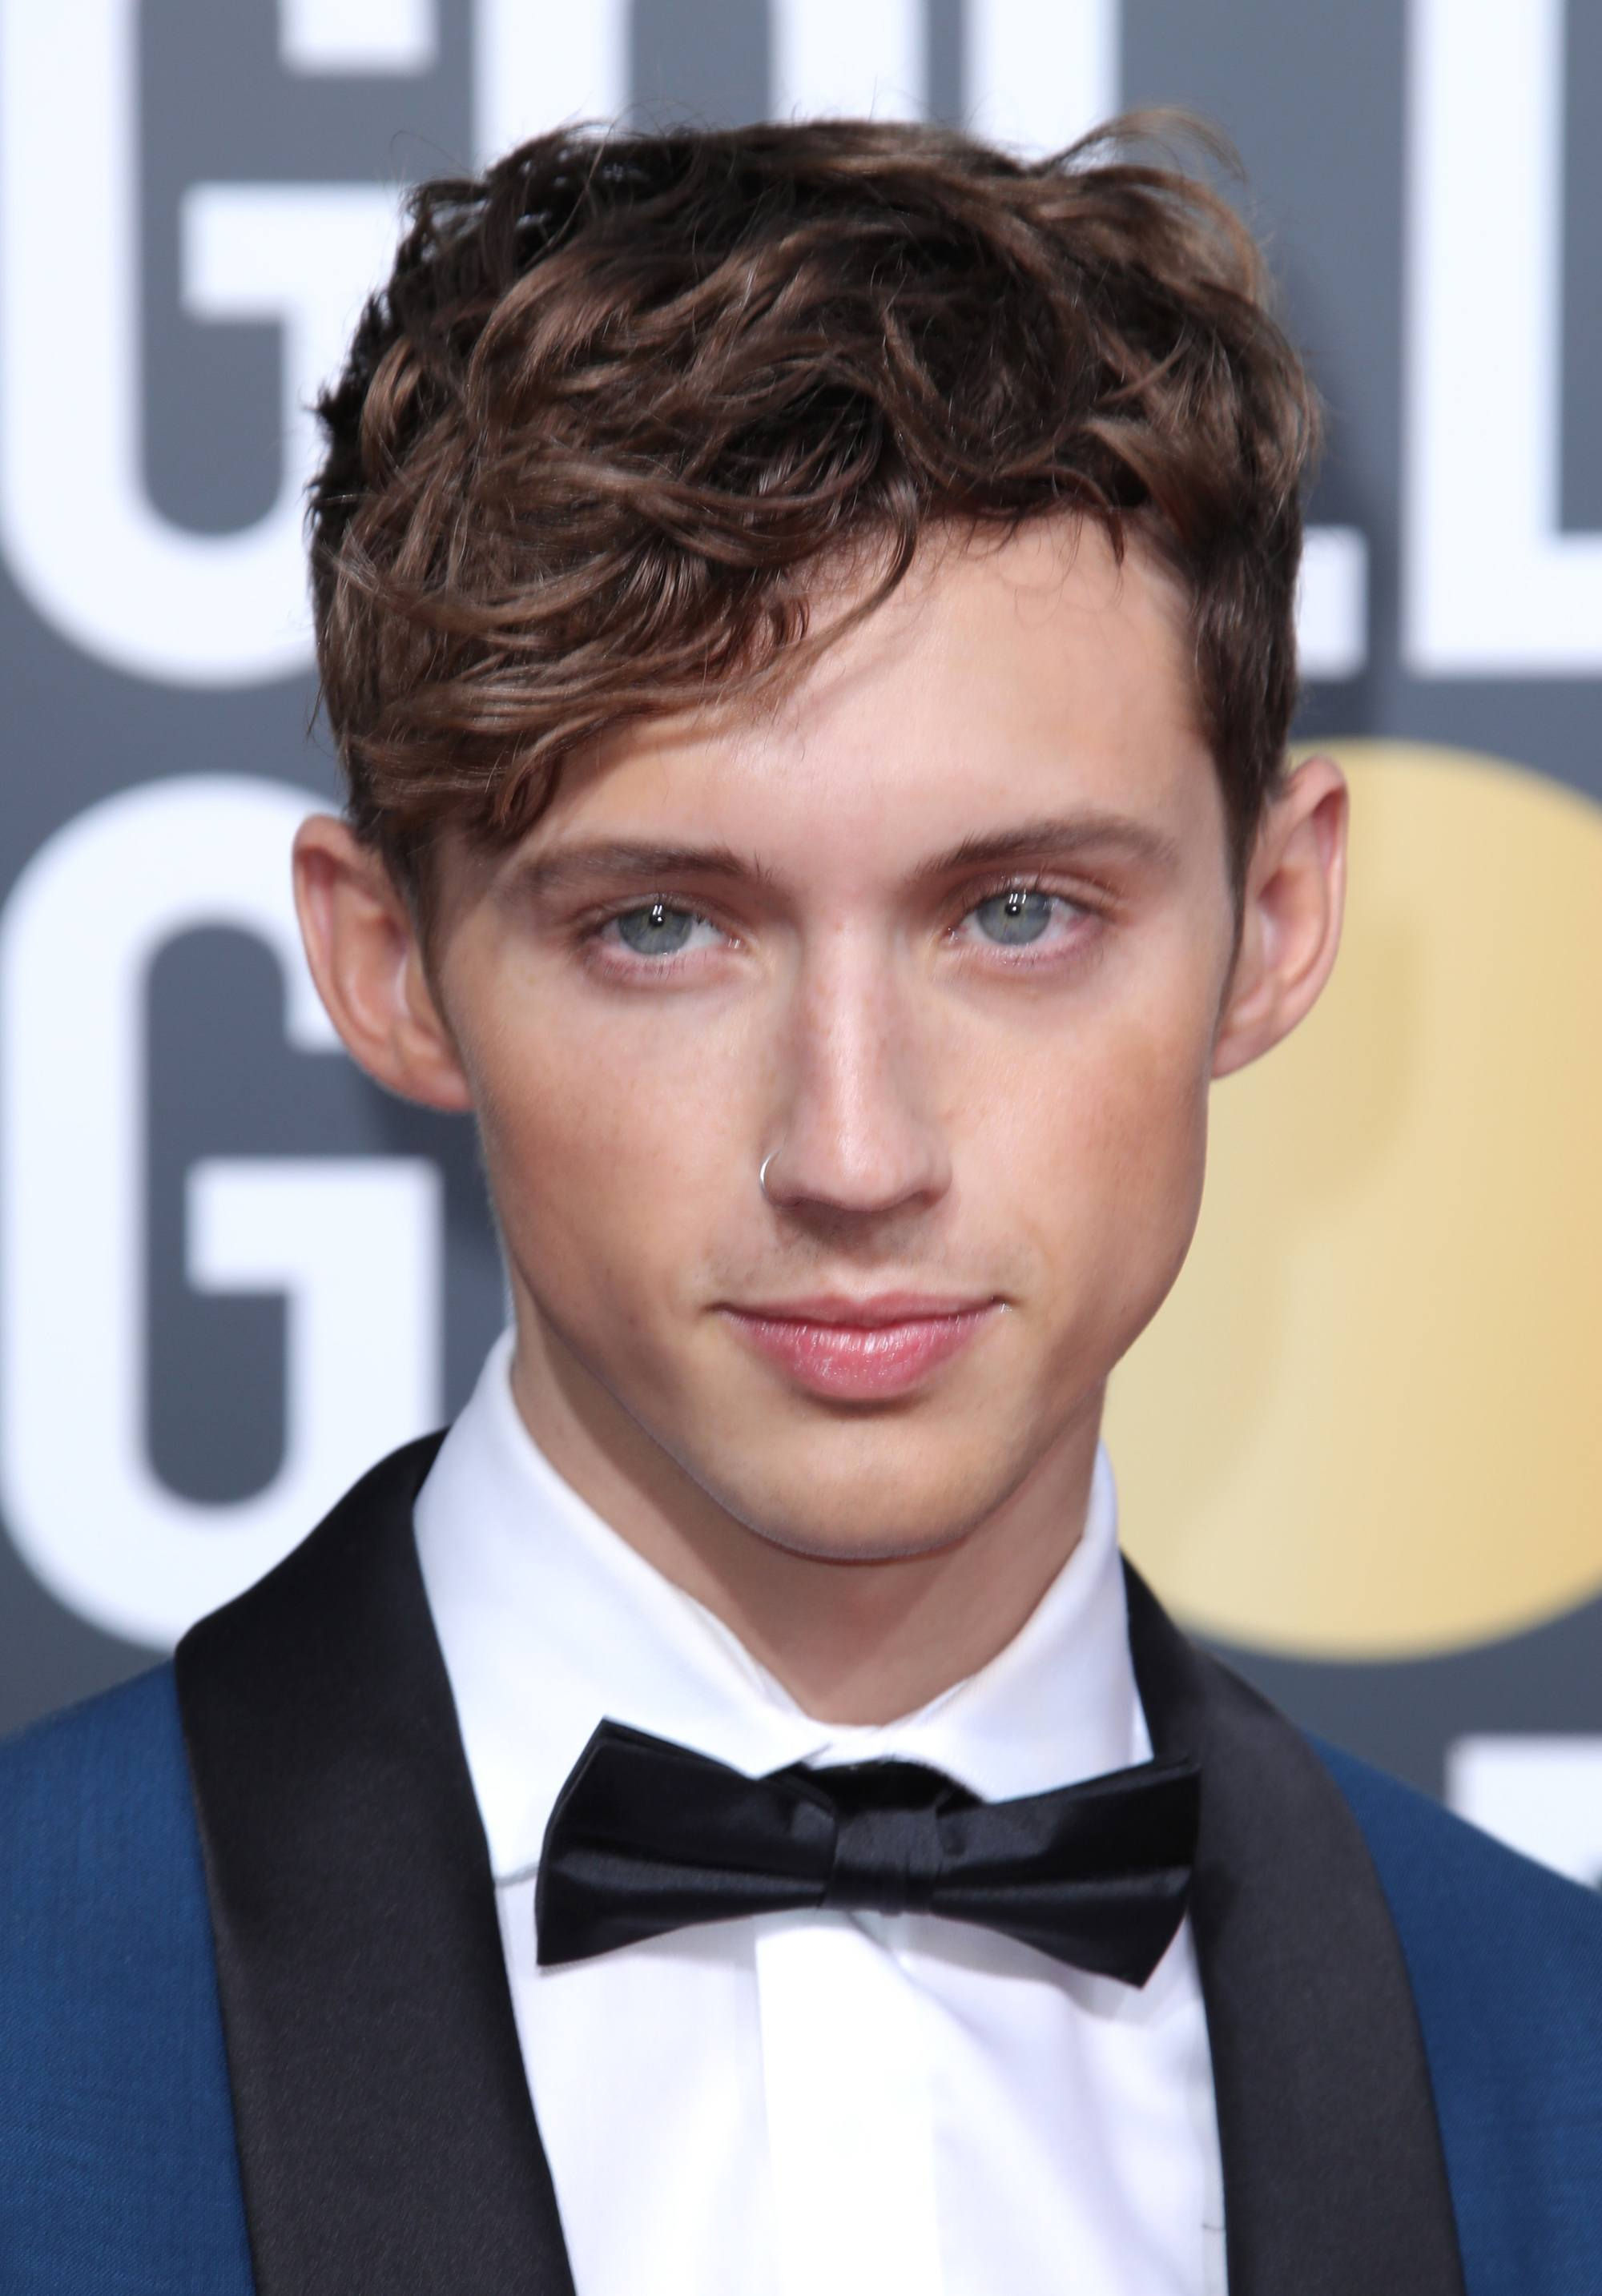 Golden Globes 2019: Close-up of Troye Sivan with brown curls